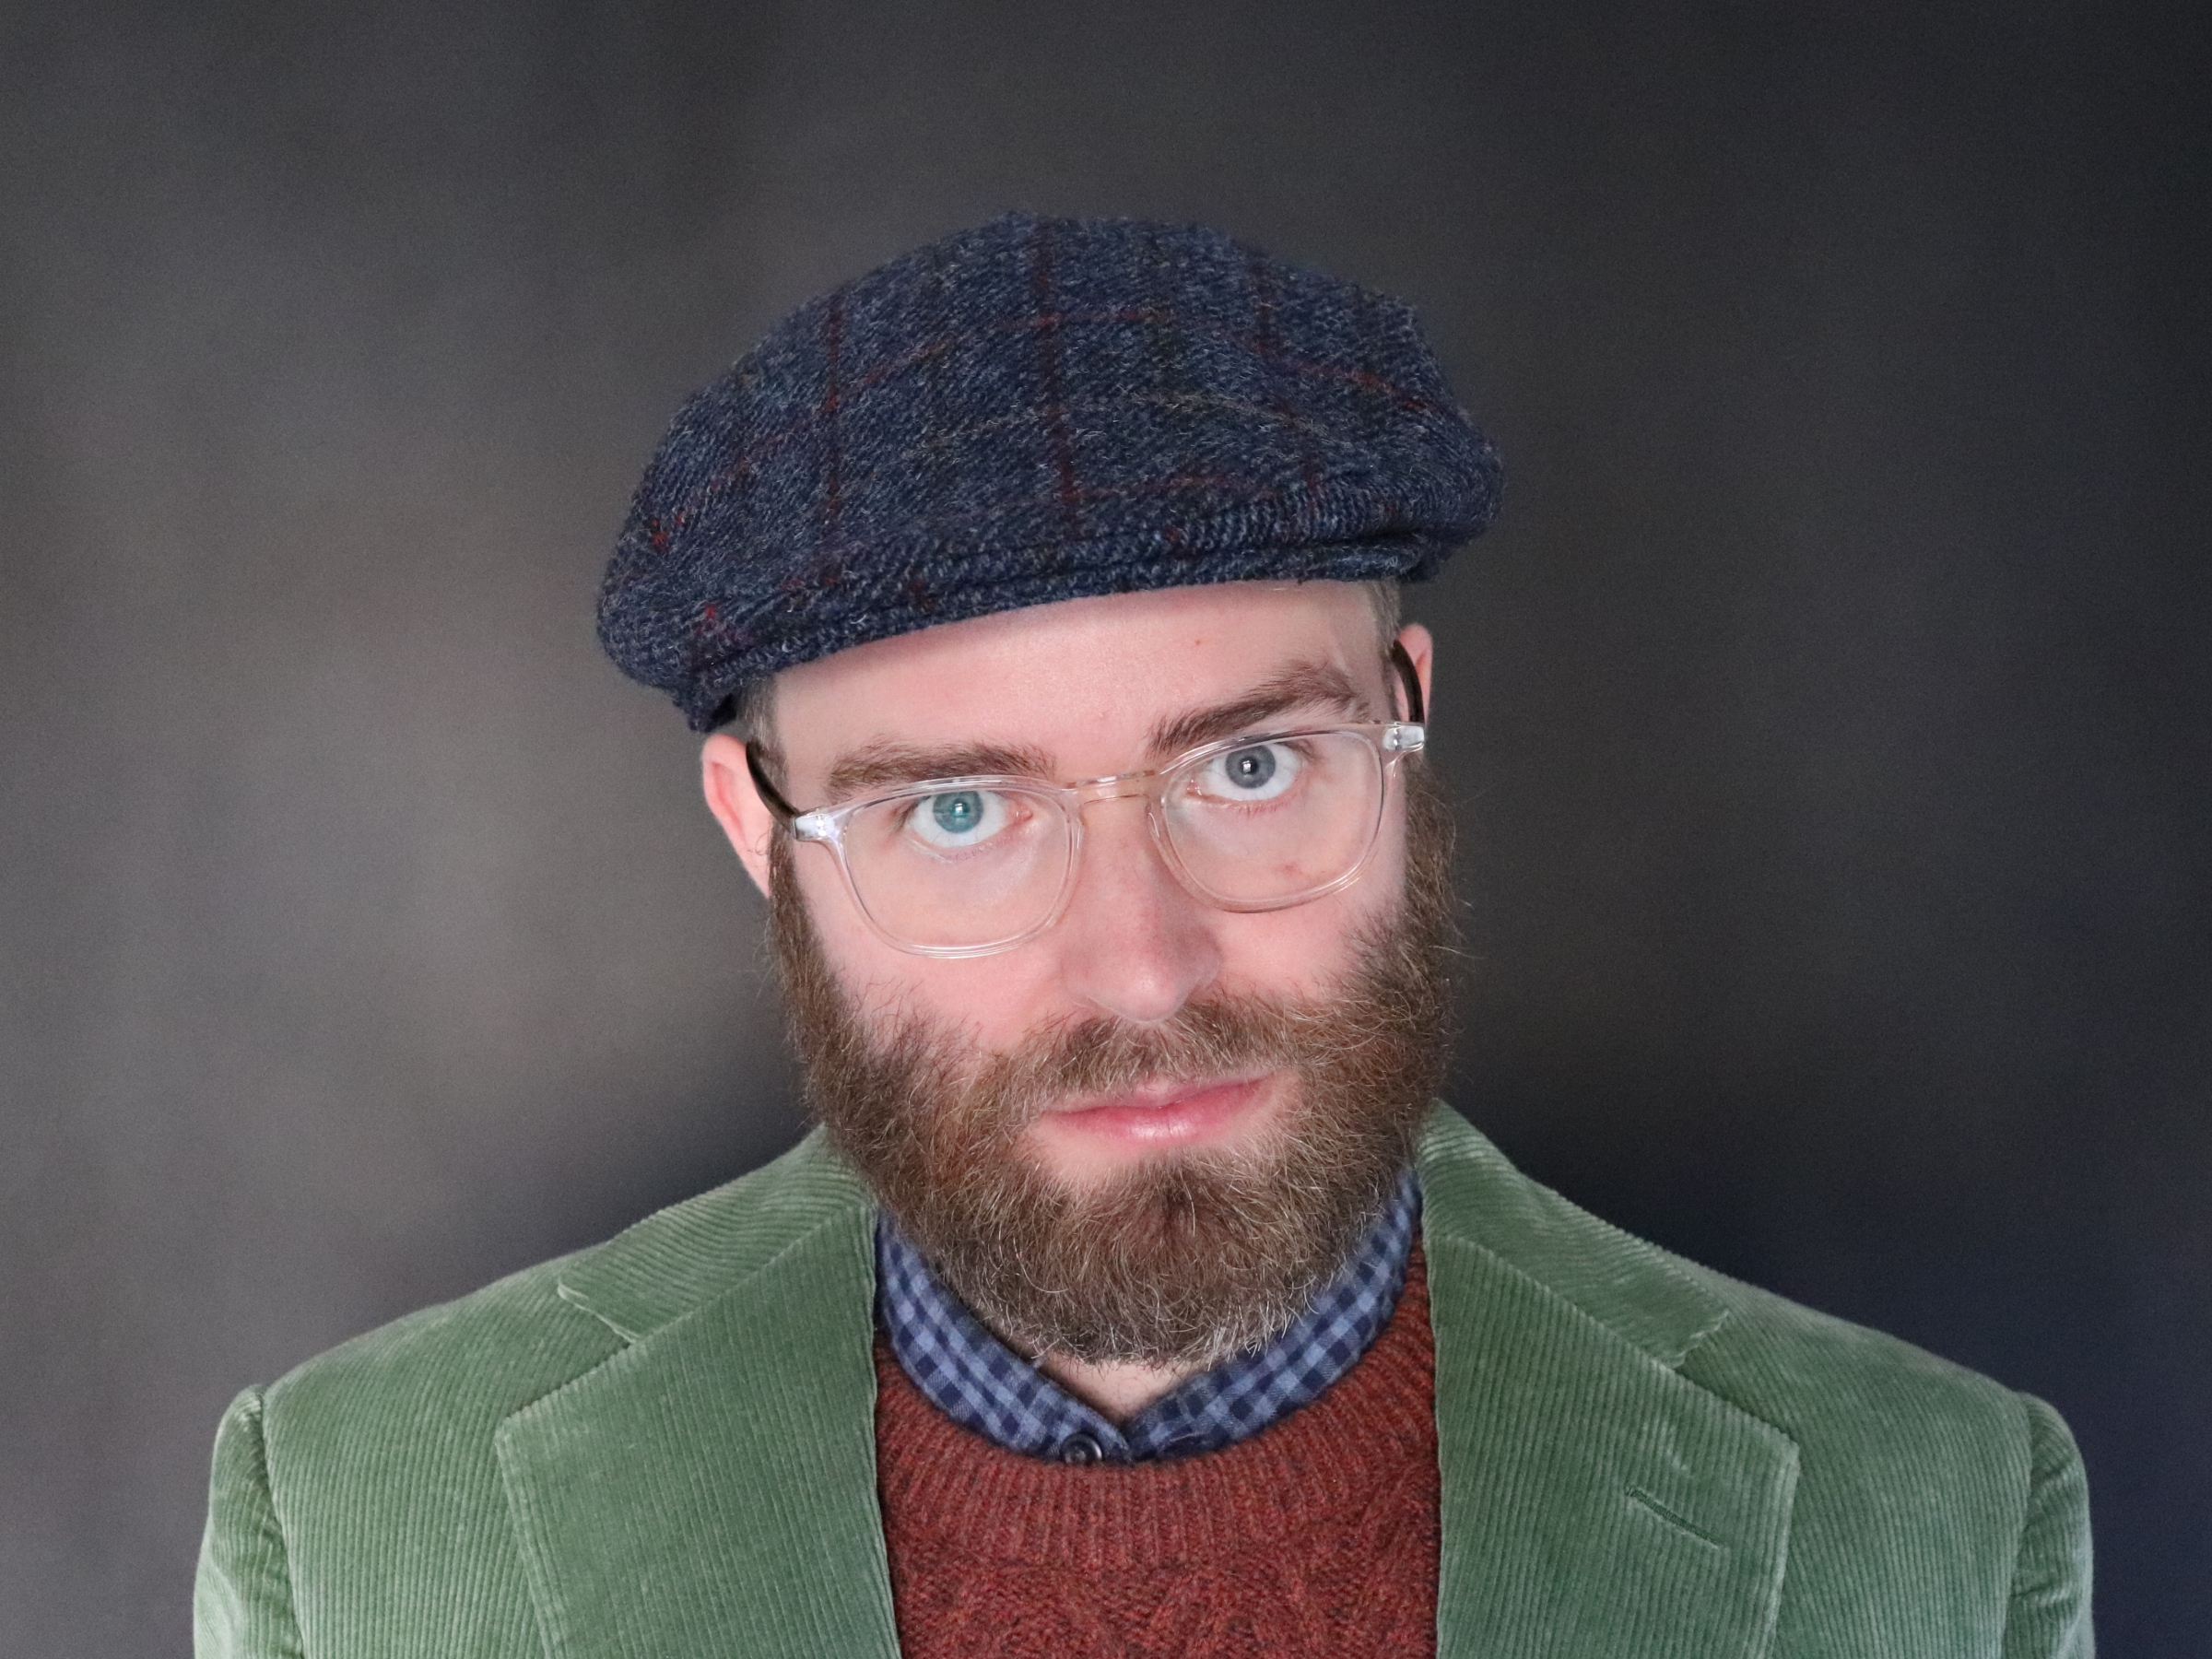 Steven Colborne in a green jacket and flat cap